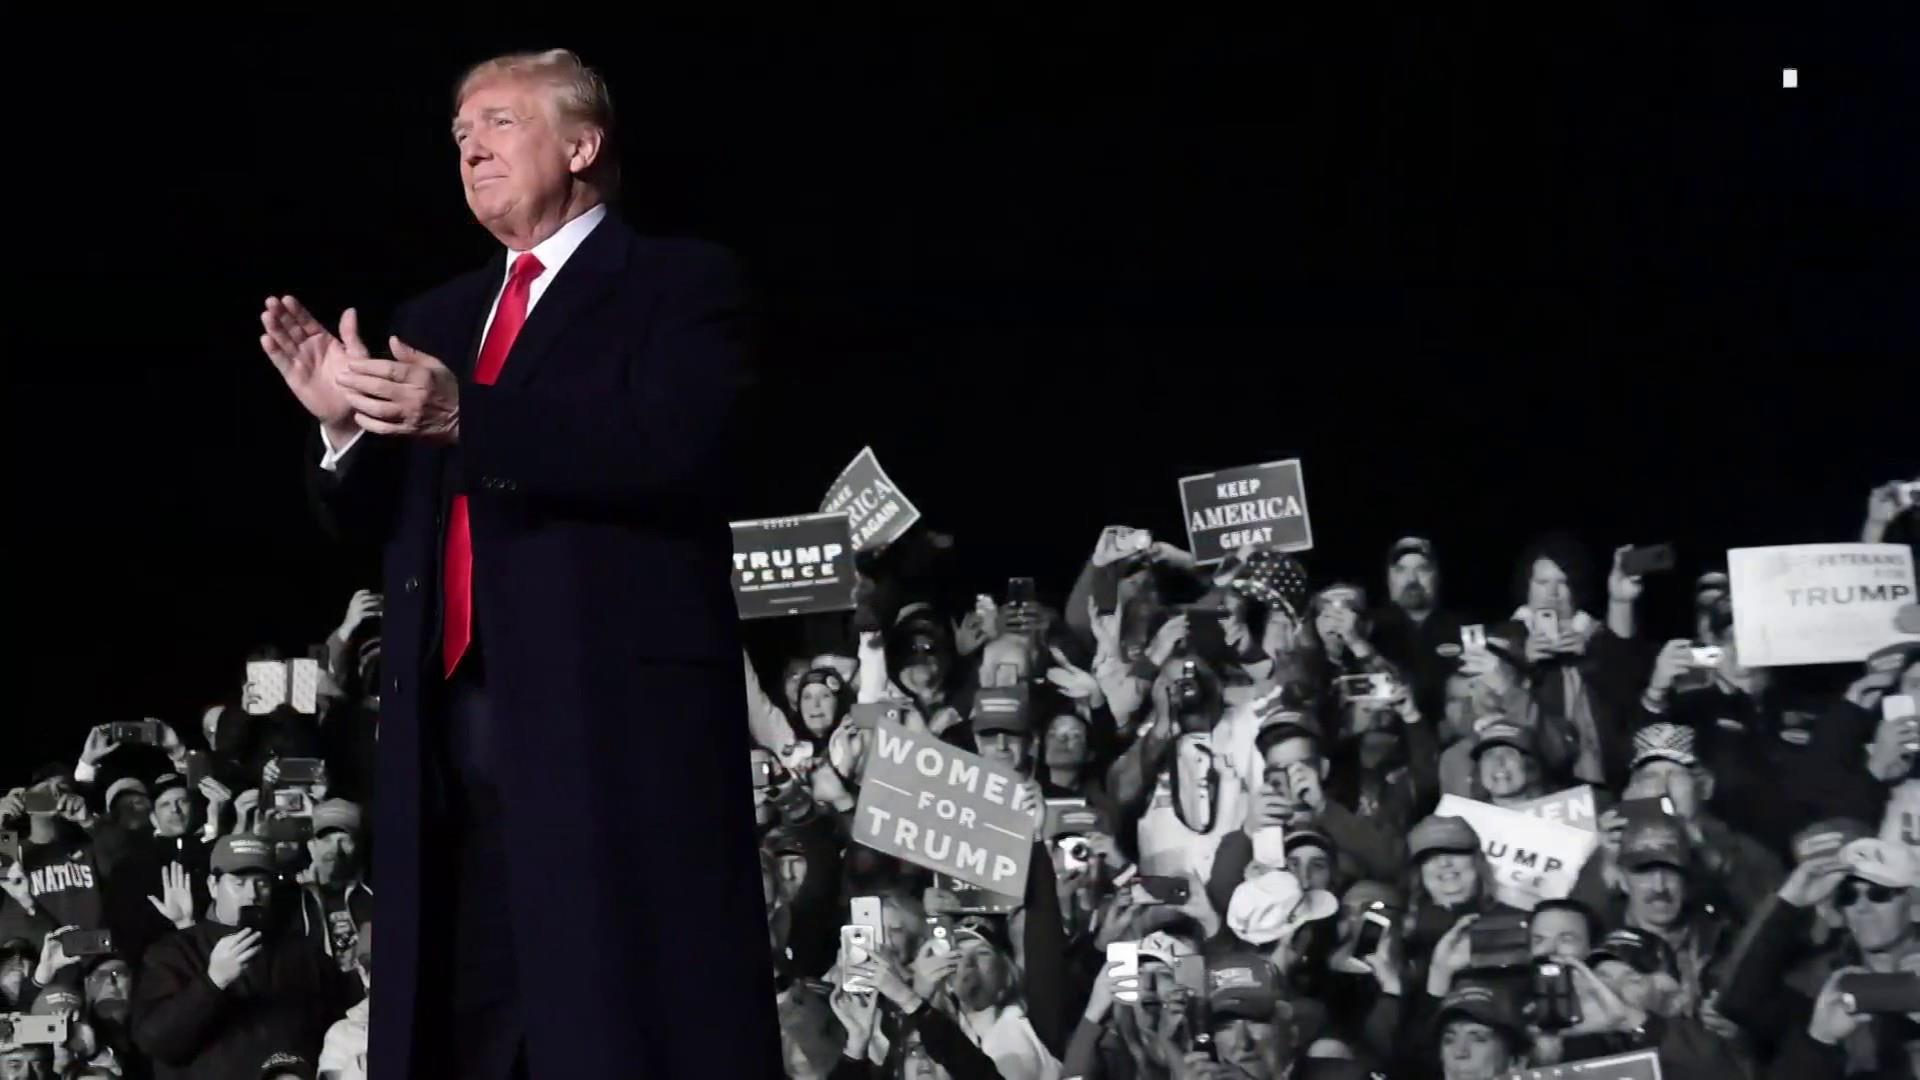 Trump holds rally after pipe bombs sent to Obamas, Clintons & CNN